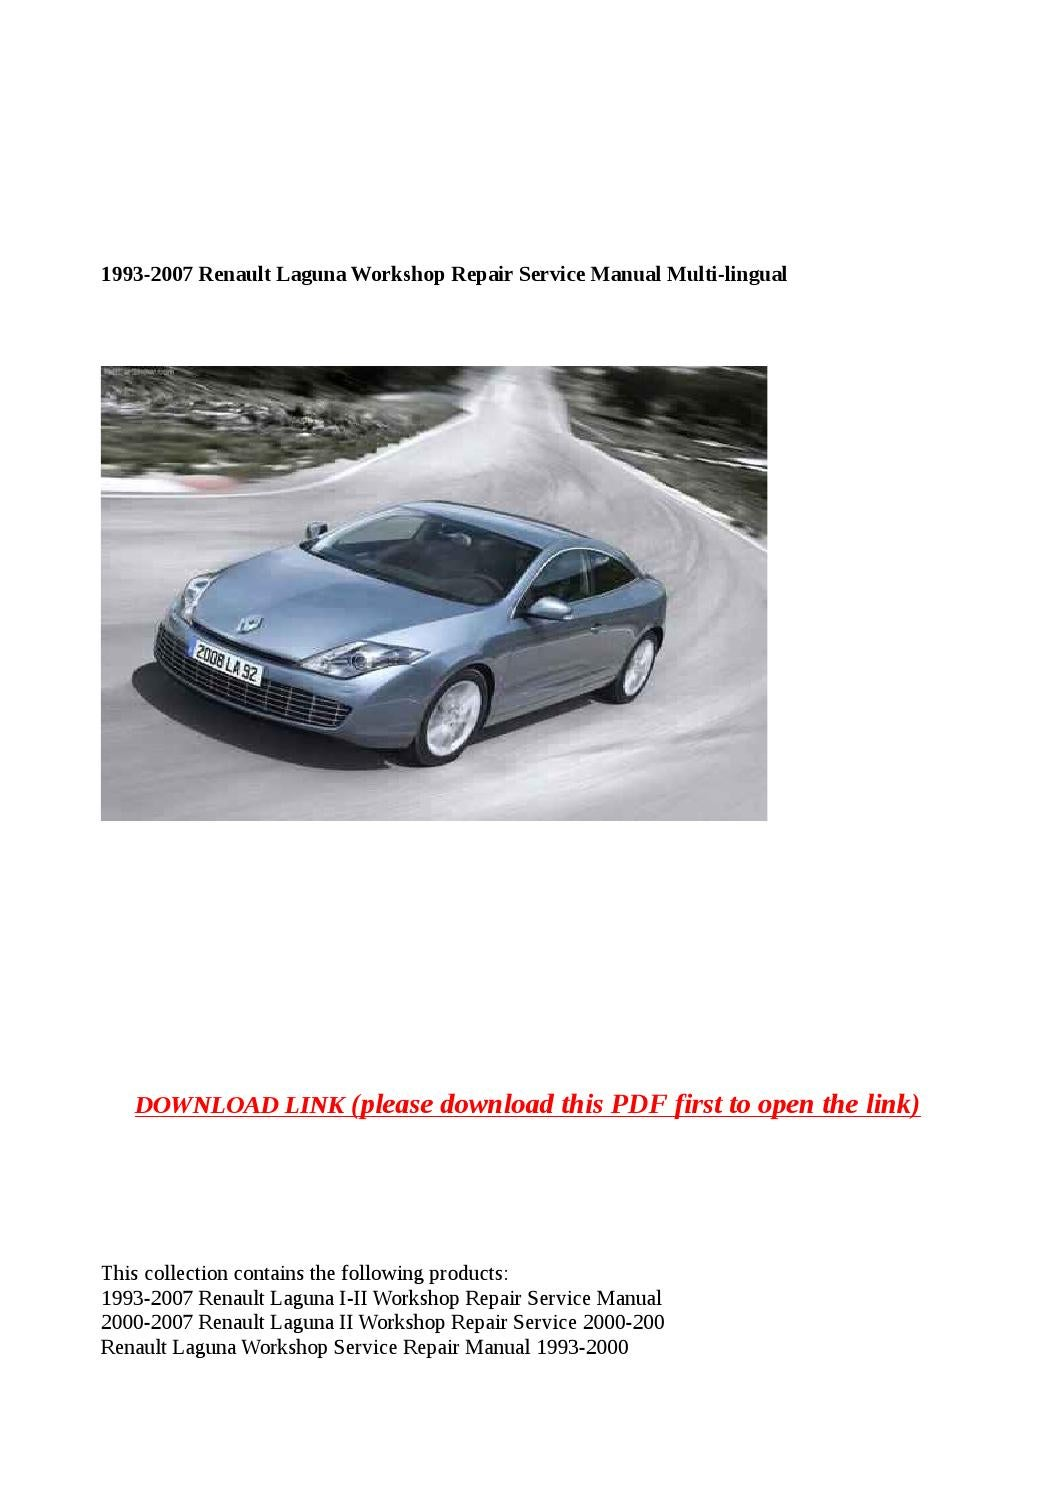 1993 2007 renault laguna workshop repair service manual multi lingual by  Cindy Tinh - issuu